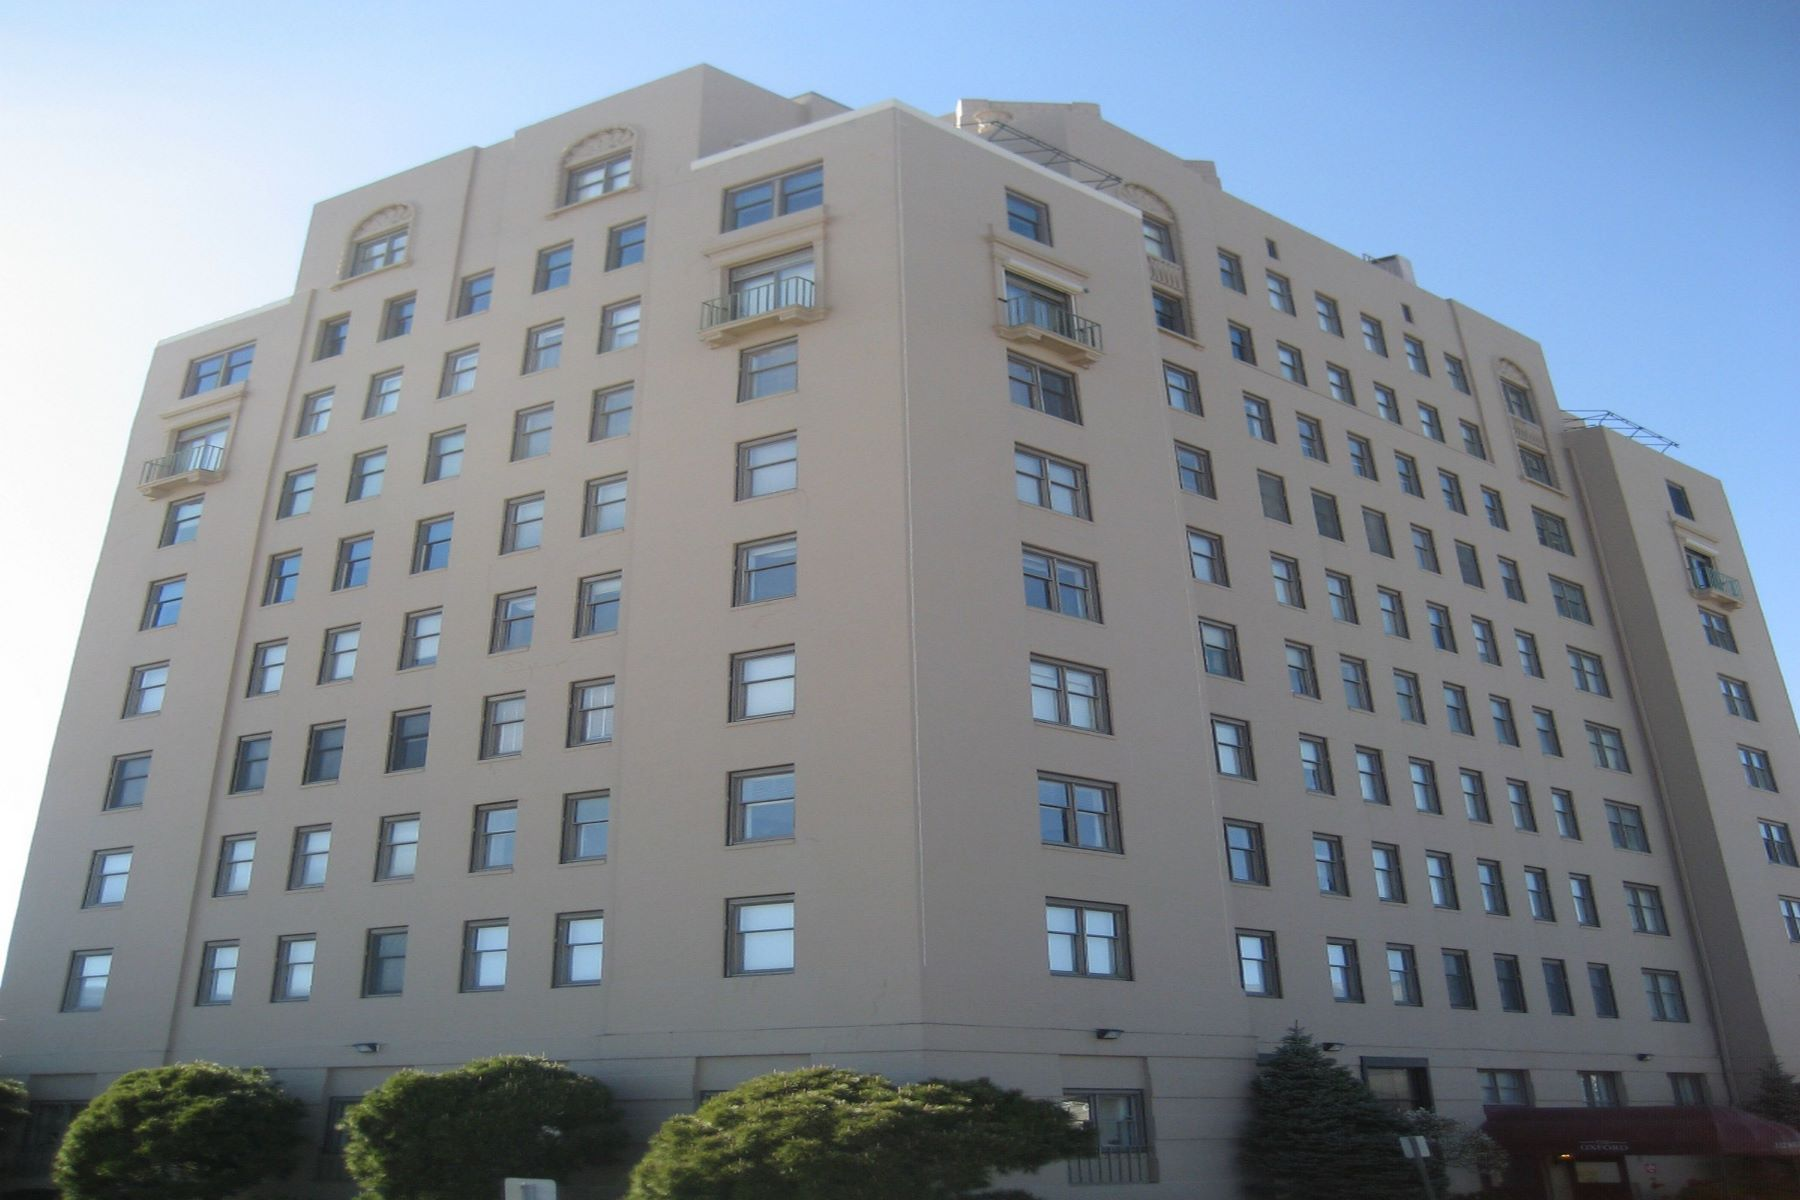 Condominiums for Rent at The Oxford 112 S Oxford Unit #1004, FULL SUMMER, Ventnor, New Jersey 08406 United States